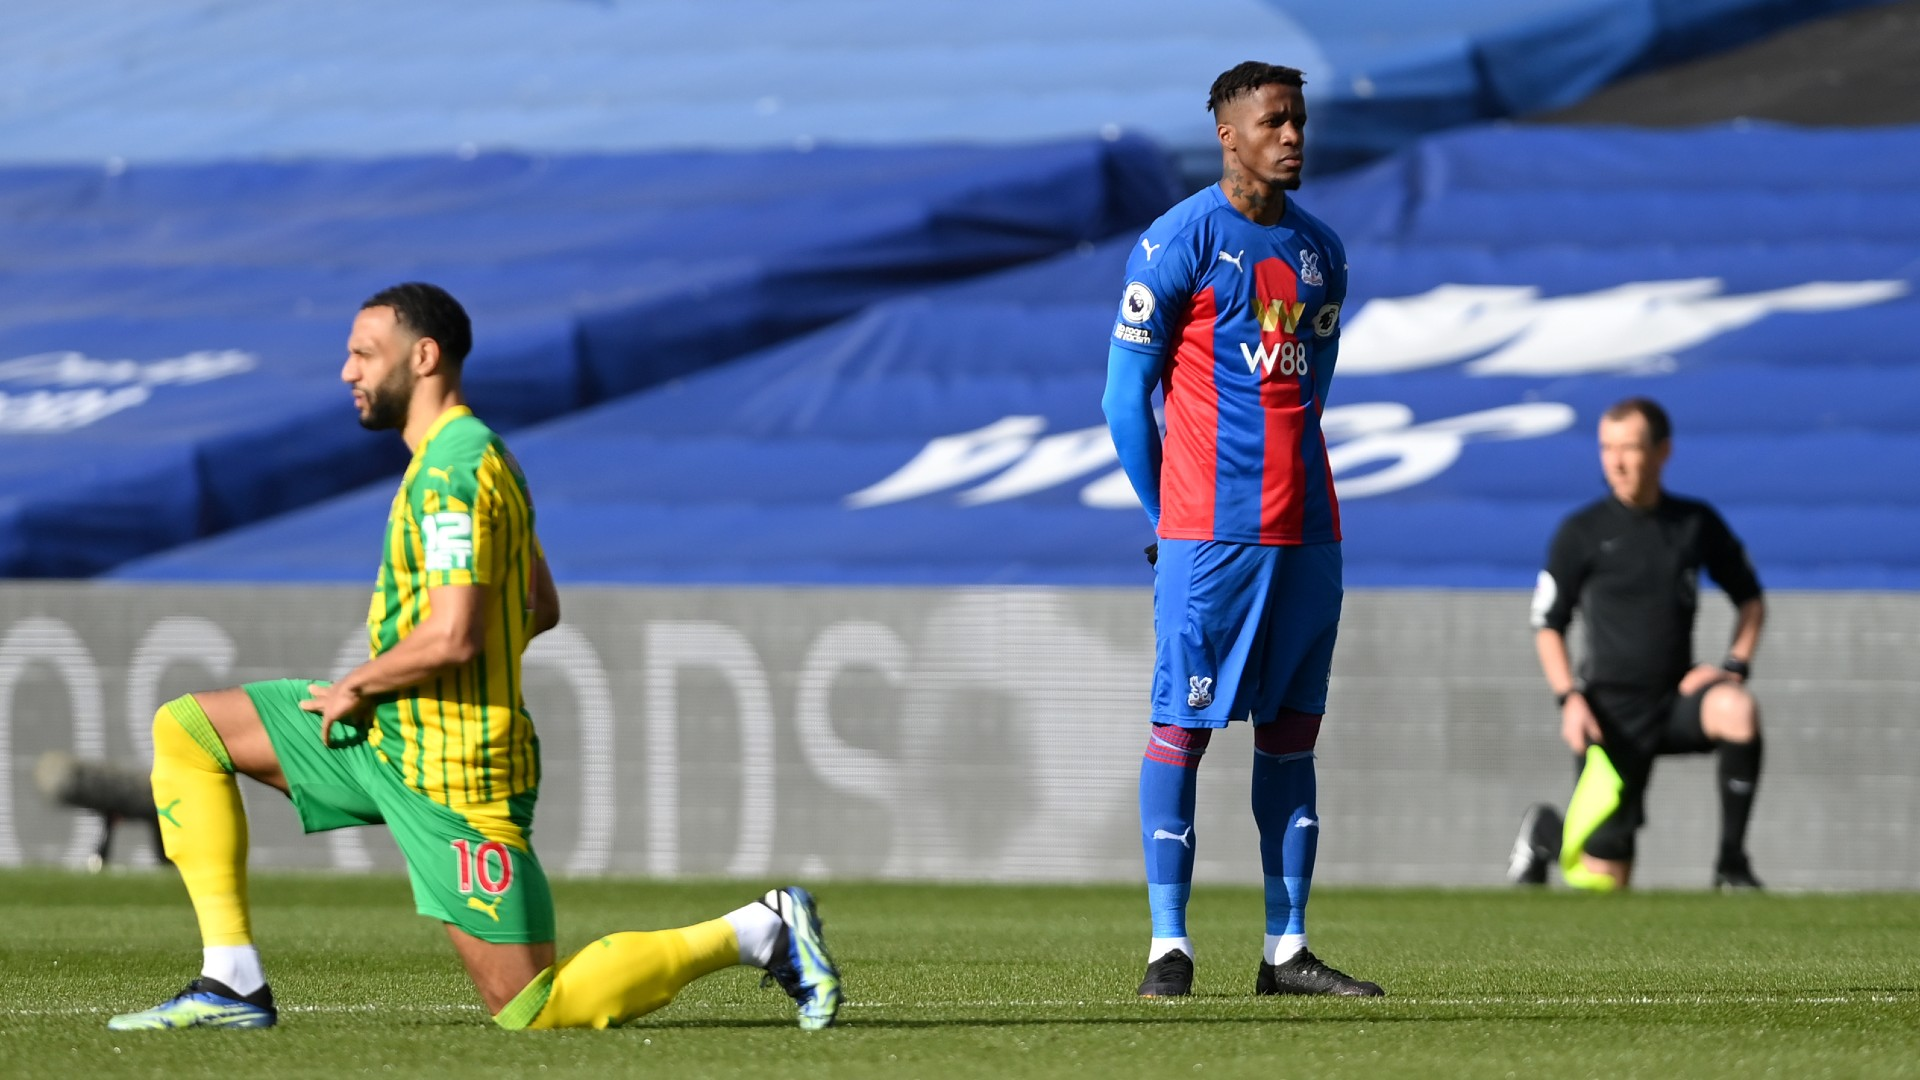 Crystal Palace star Zaha becomes first Premier League player to stop taking the knee in anti-racism fight